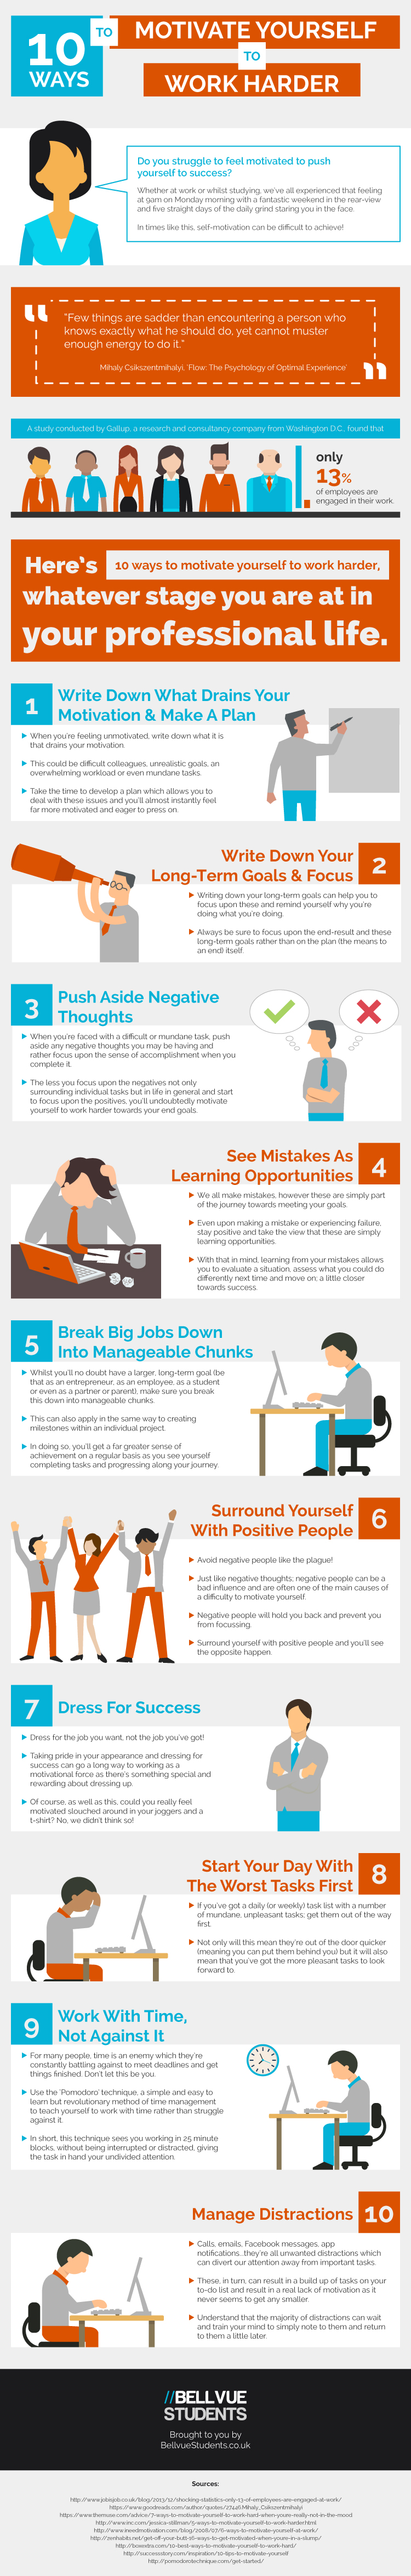 10 Ways To Motivate Yourself to Work Harder [Infographic]